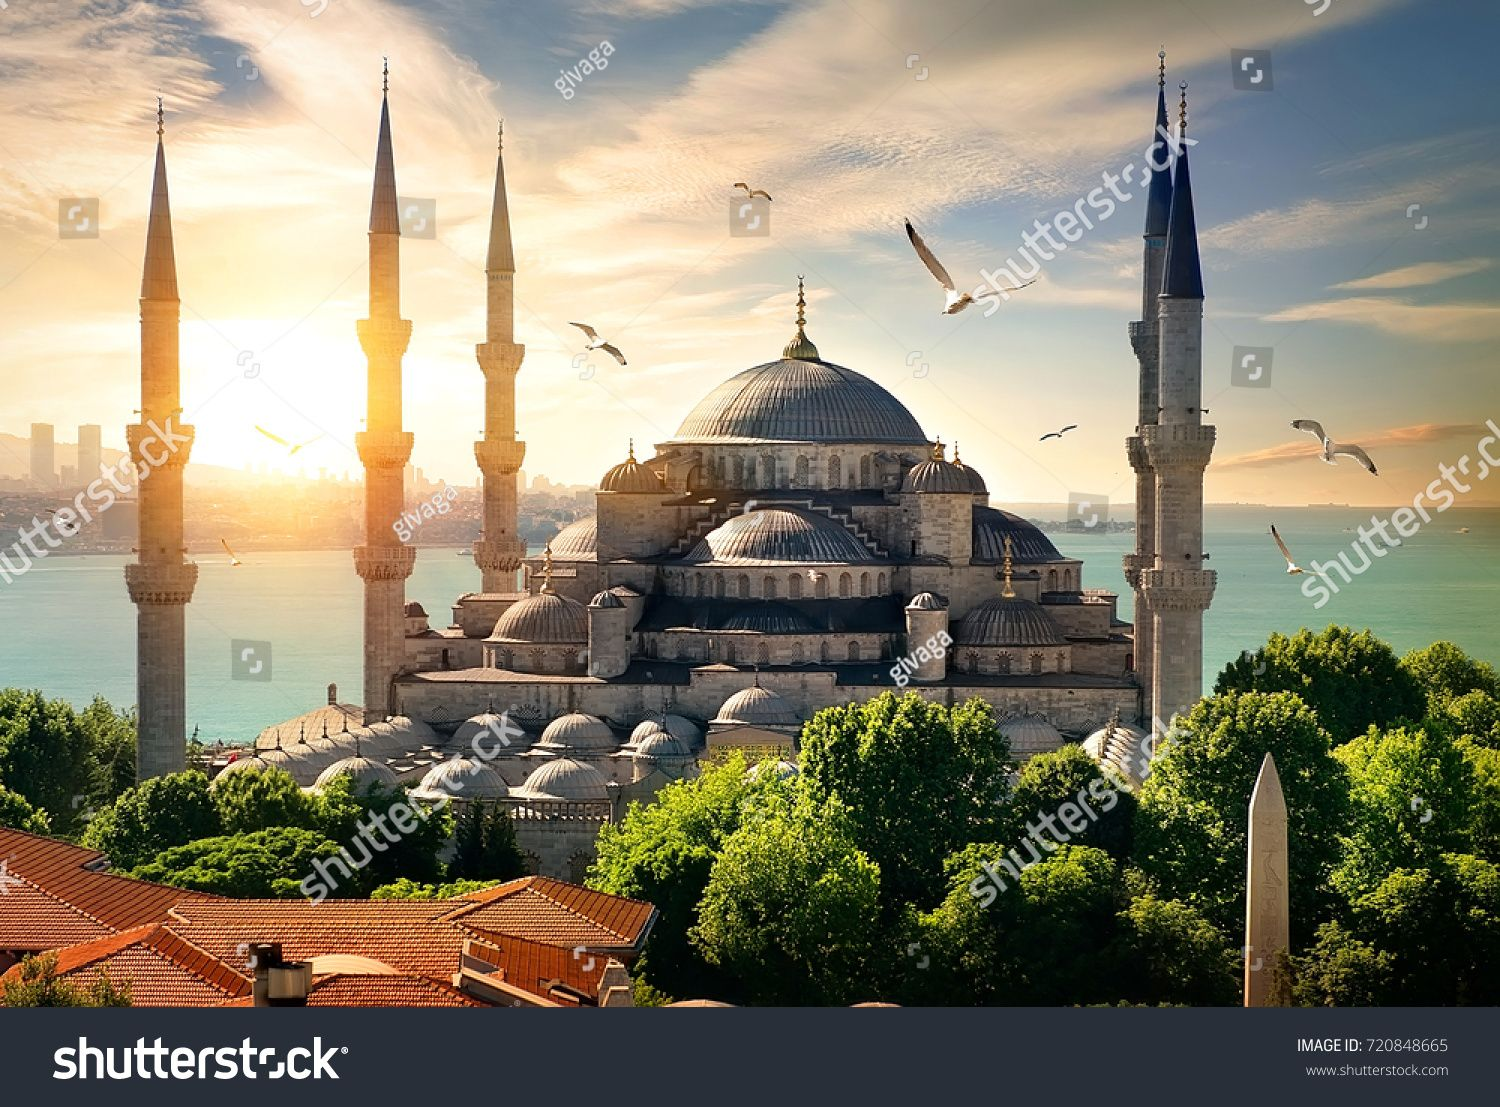 Seagulls Over Blue Mosque And Bosphorus In Istanbul Turkey Sponsored Affiliate Mosque Blue Seagu Cool Places To Visit Cultural Destinations Places To Go